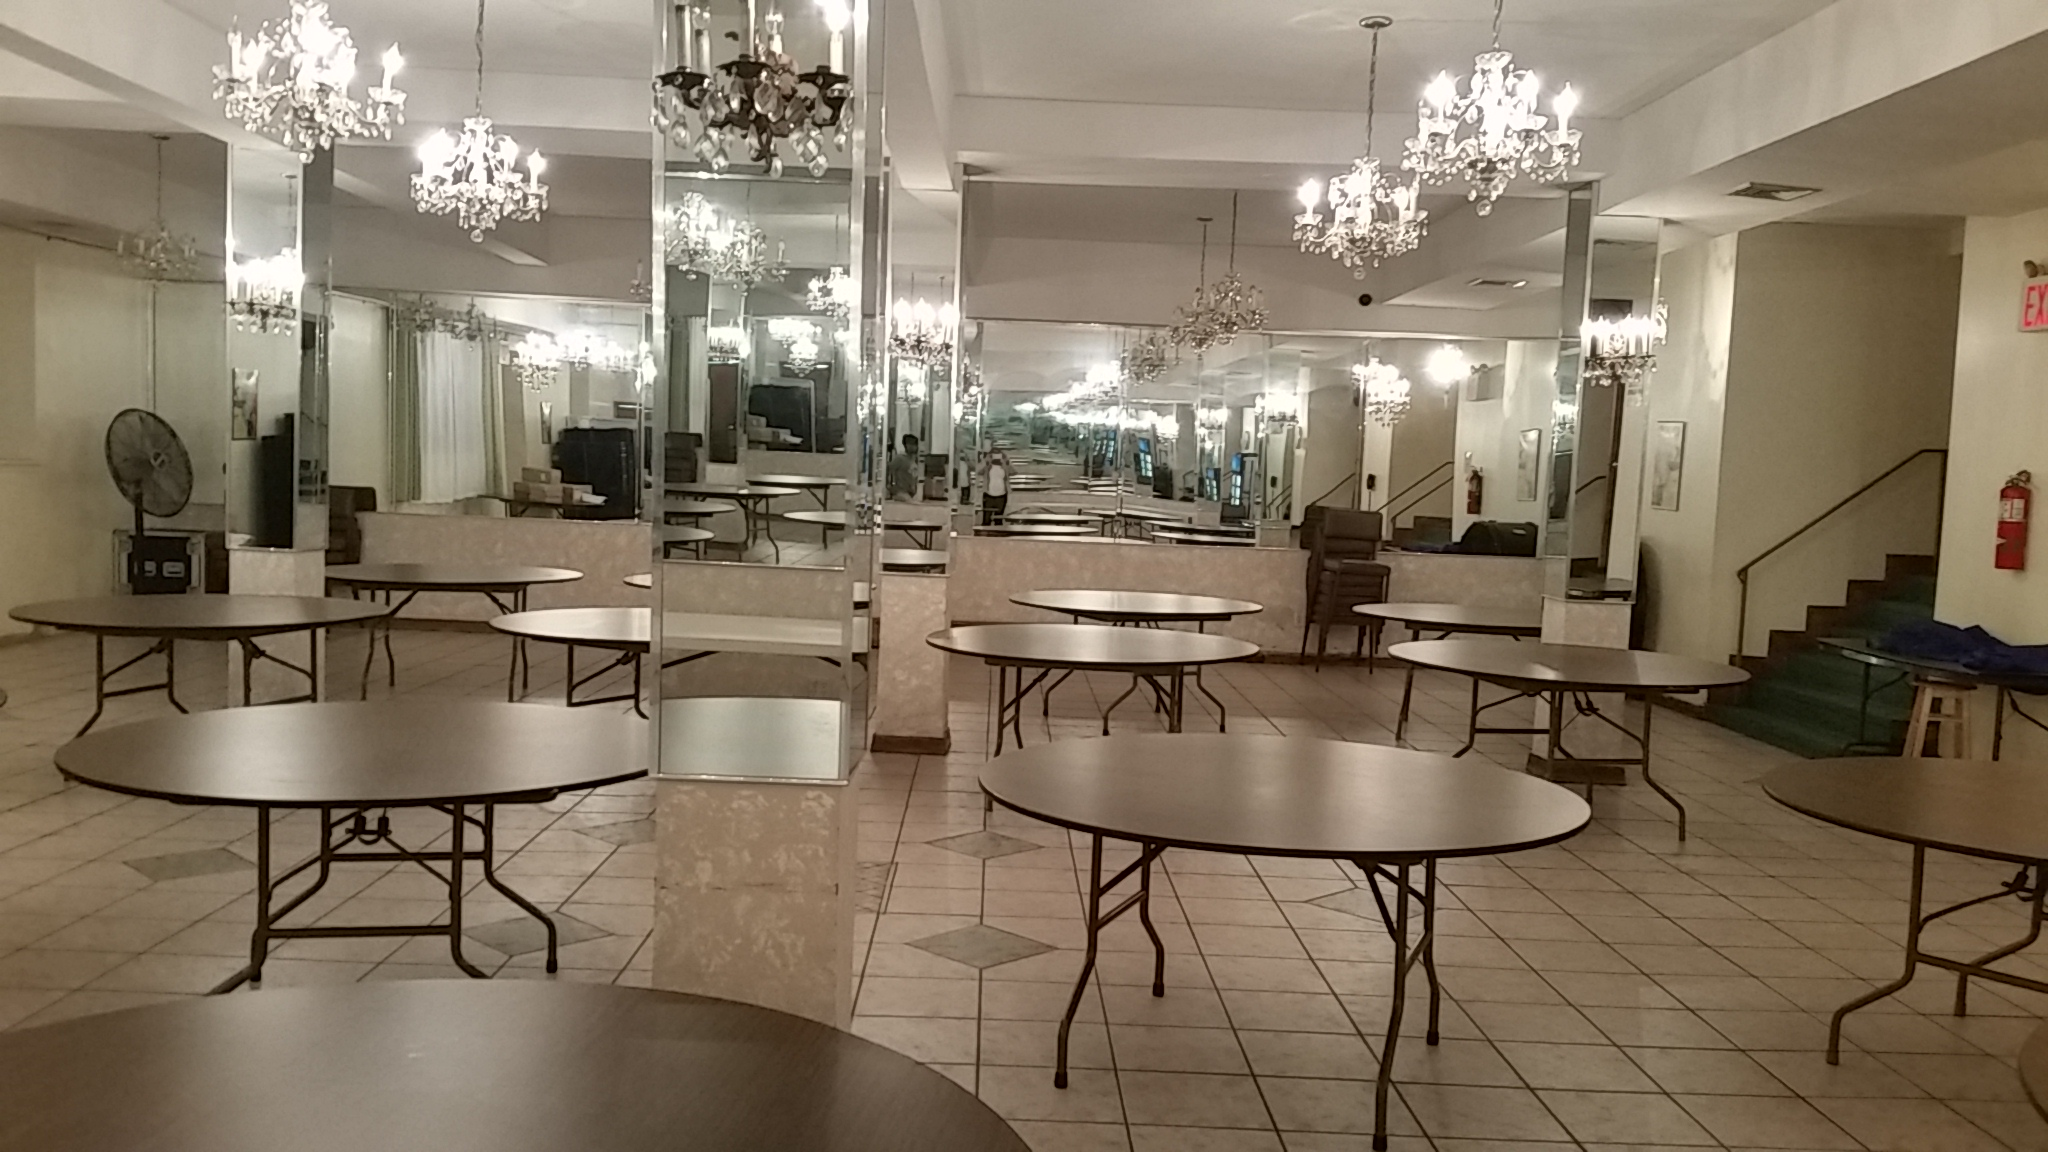 Bronx COGOP Dining Hall